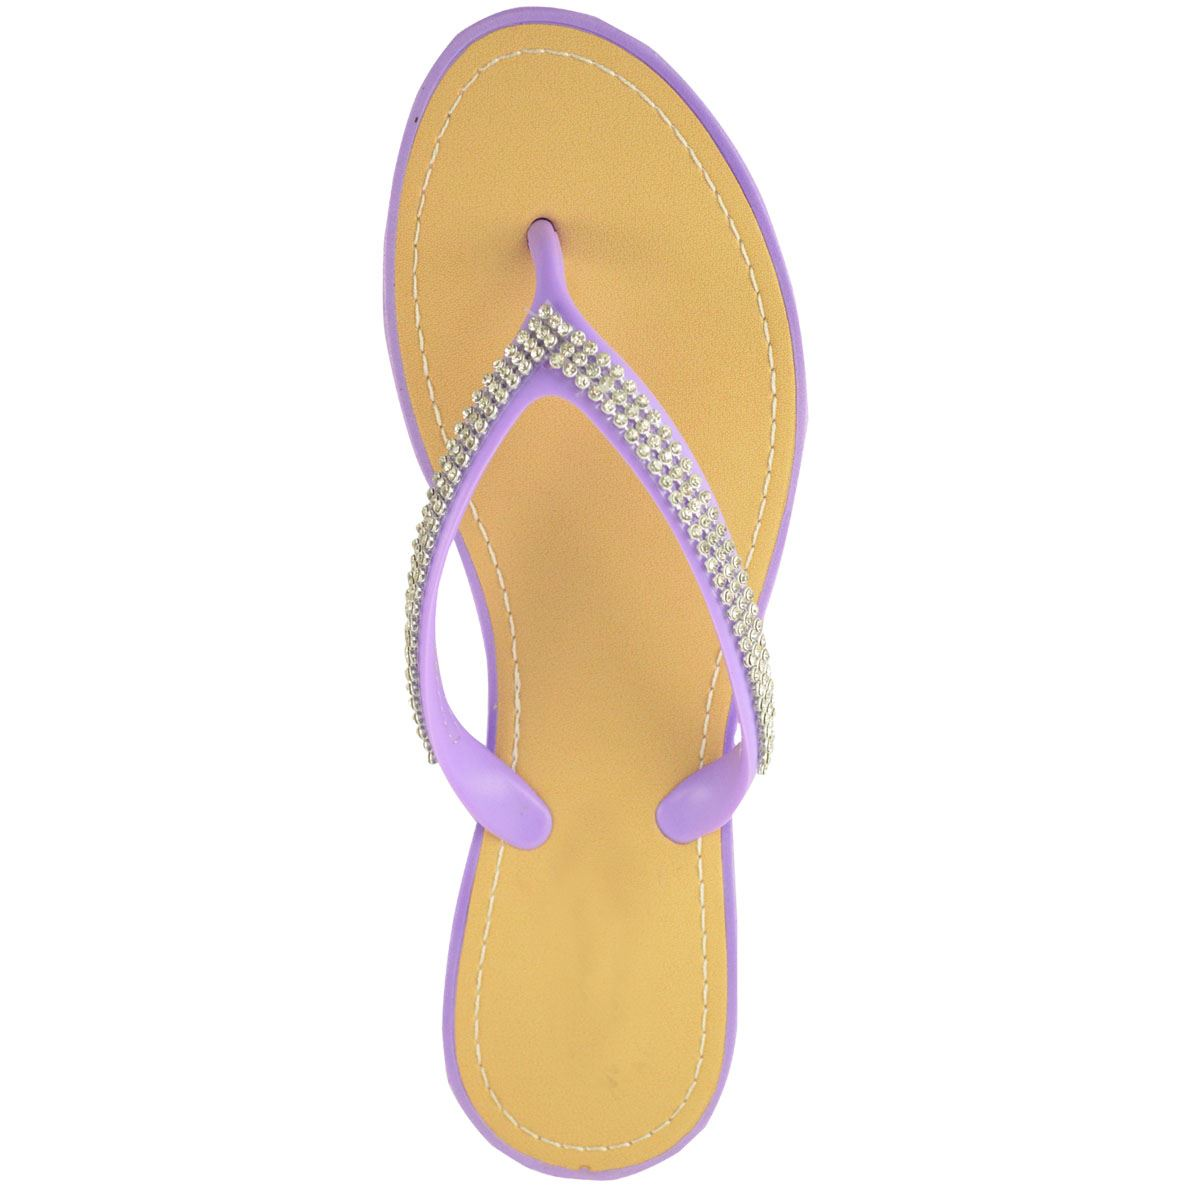 NEW-JELLY-SANDALS-WOMENS-LADIES-DIAMANTE-SUMMER-HOLIDAY-COMFORTS-FLIP-FLOPS-SIZE thumbnail 64